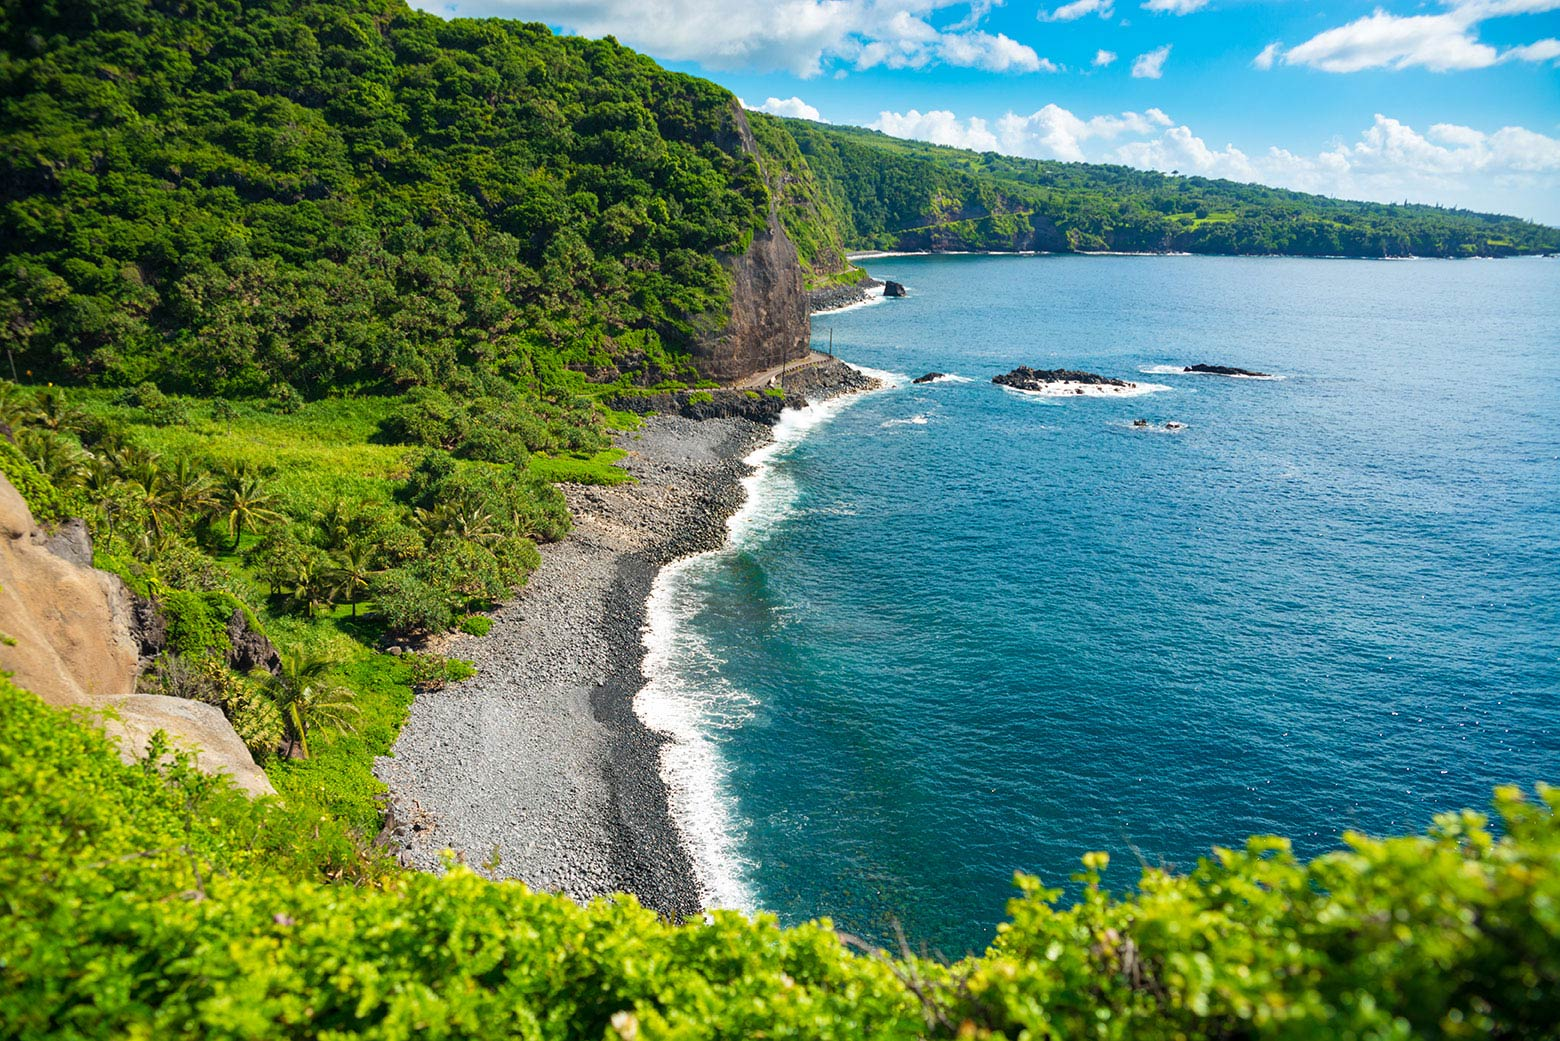 Curved rocky coastline of Maui with turquoise water on the right and dense foliage on the left